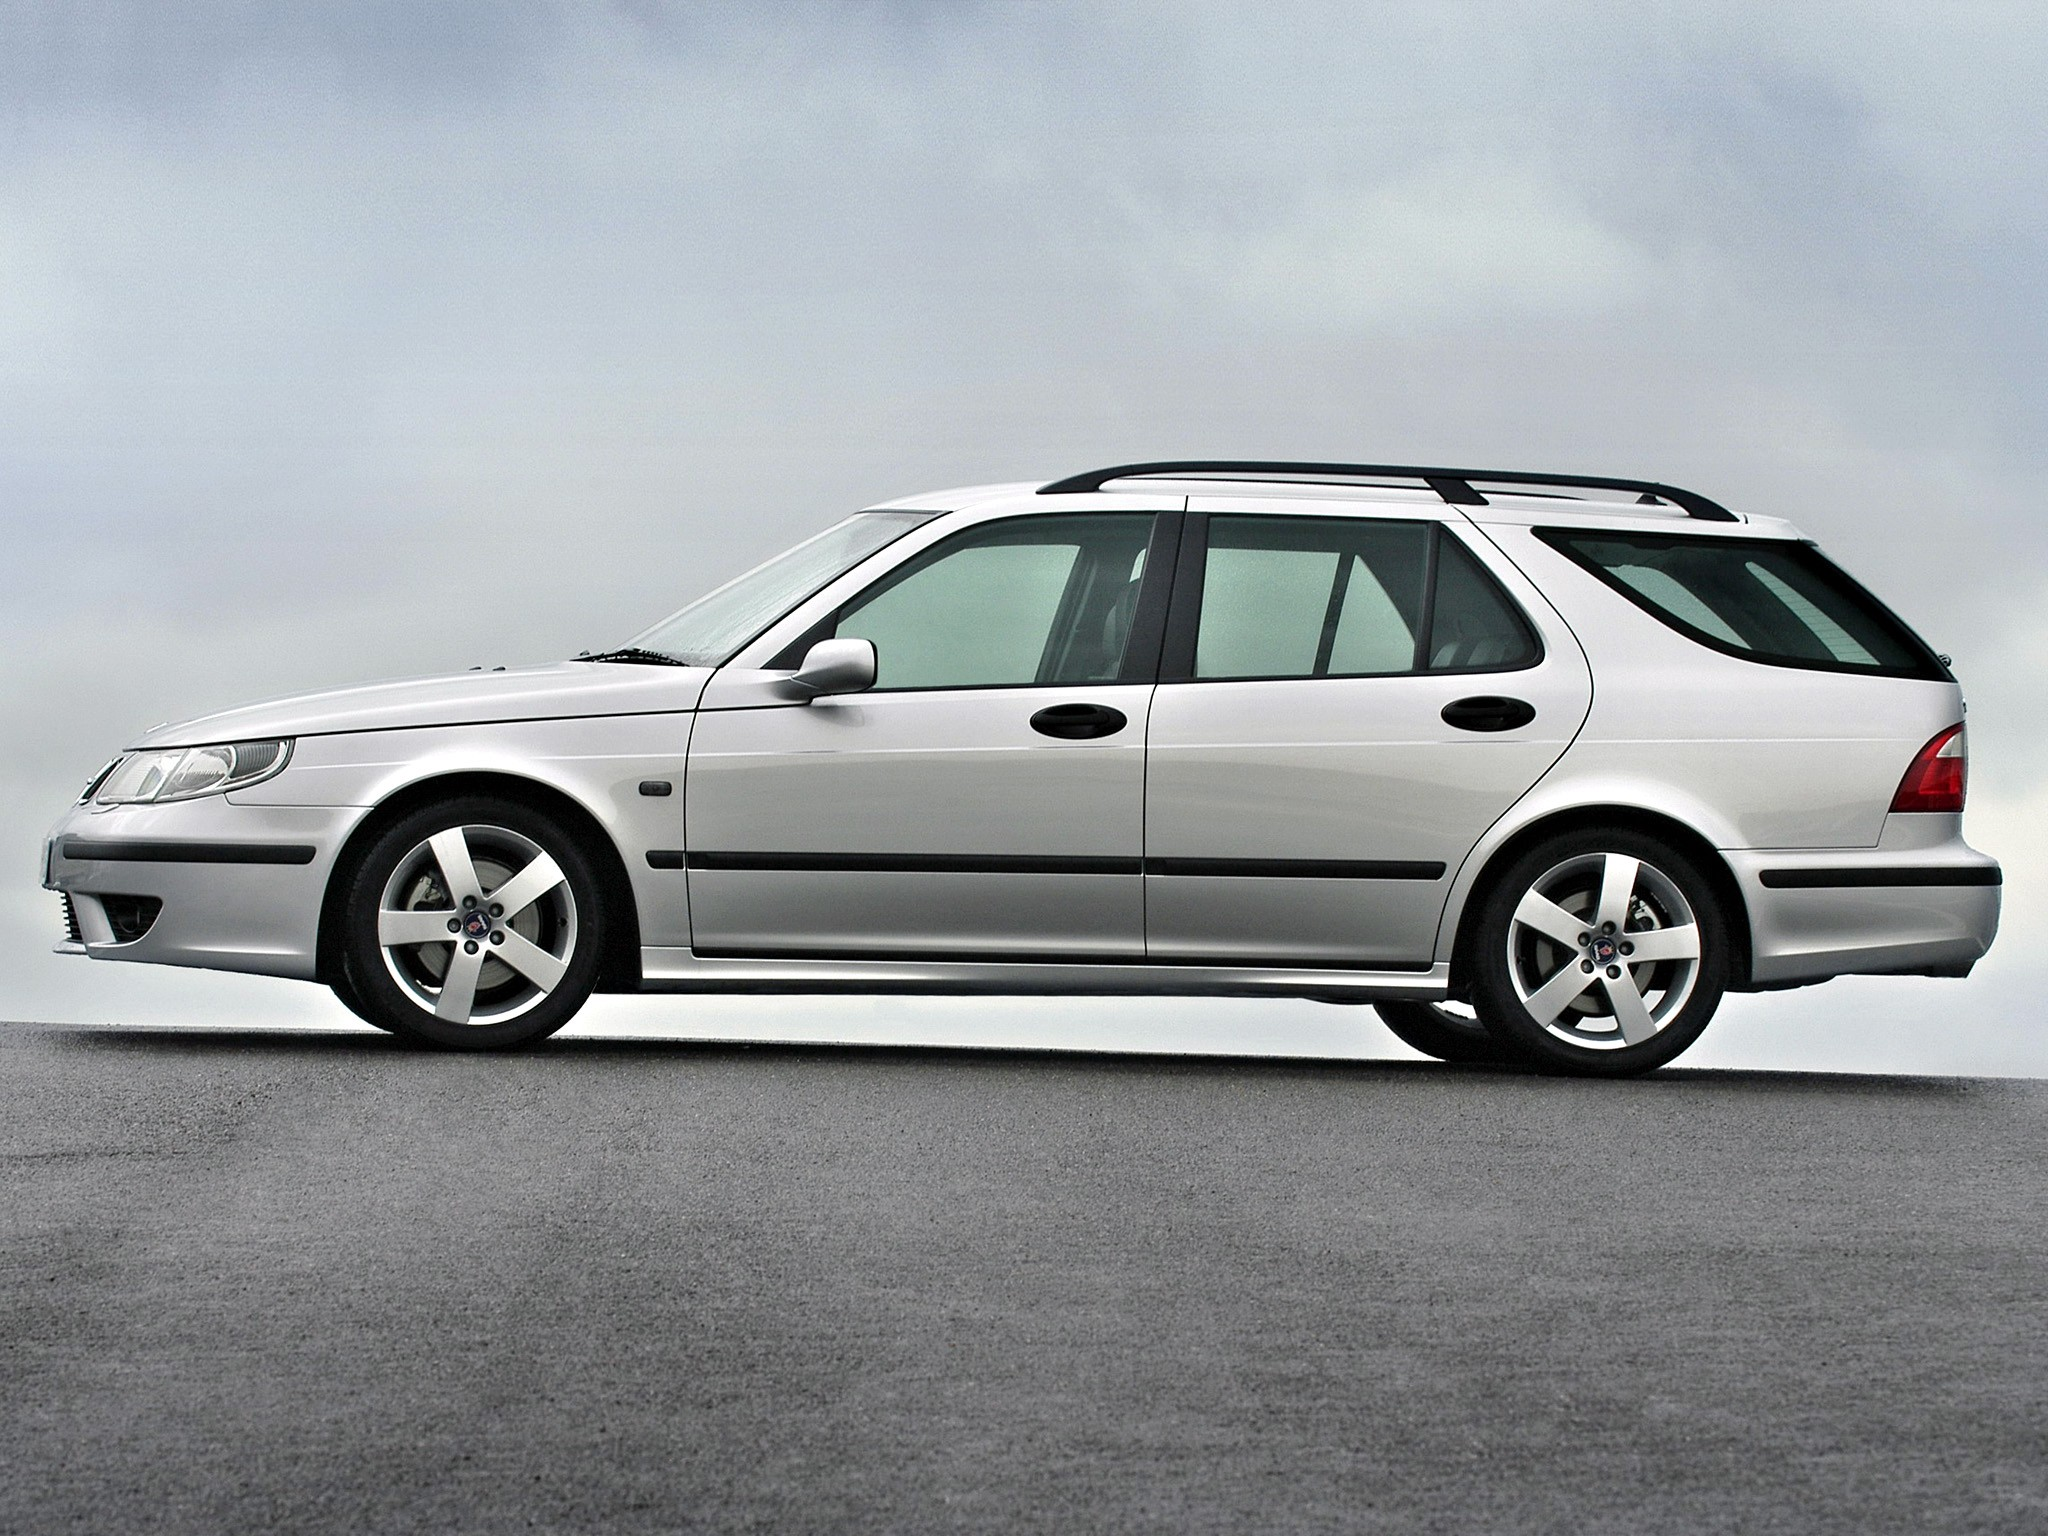 saab 9 5 sportcombi specs 2001 2002 2003 2004 2005 autoevolution. Black Bedroom Furniture Sets. Home Design Ideas